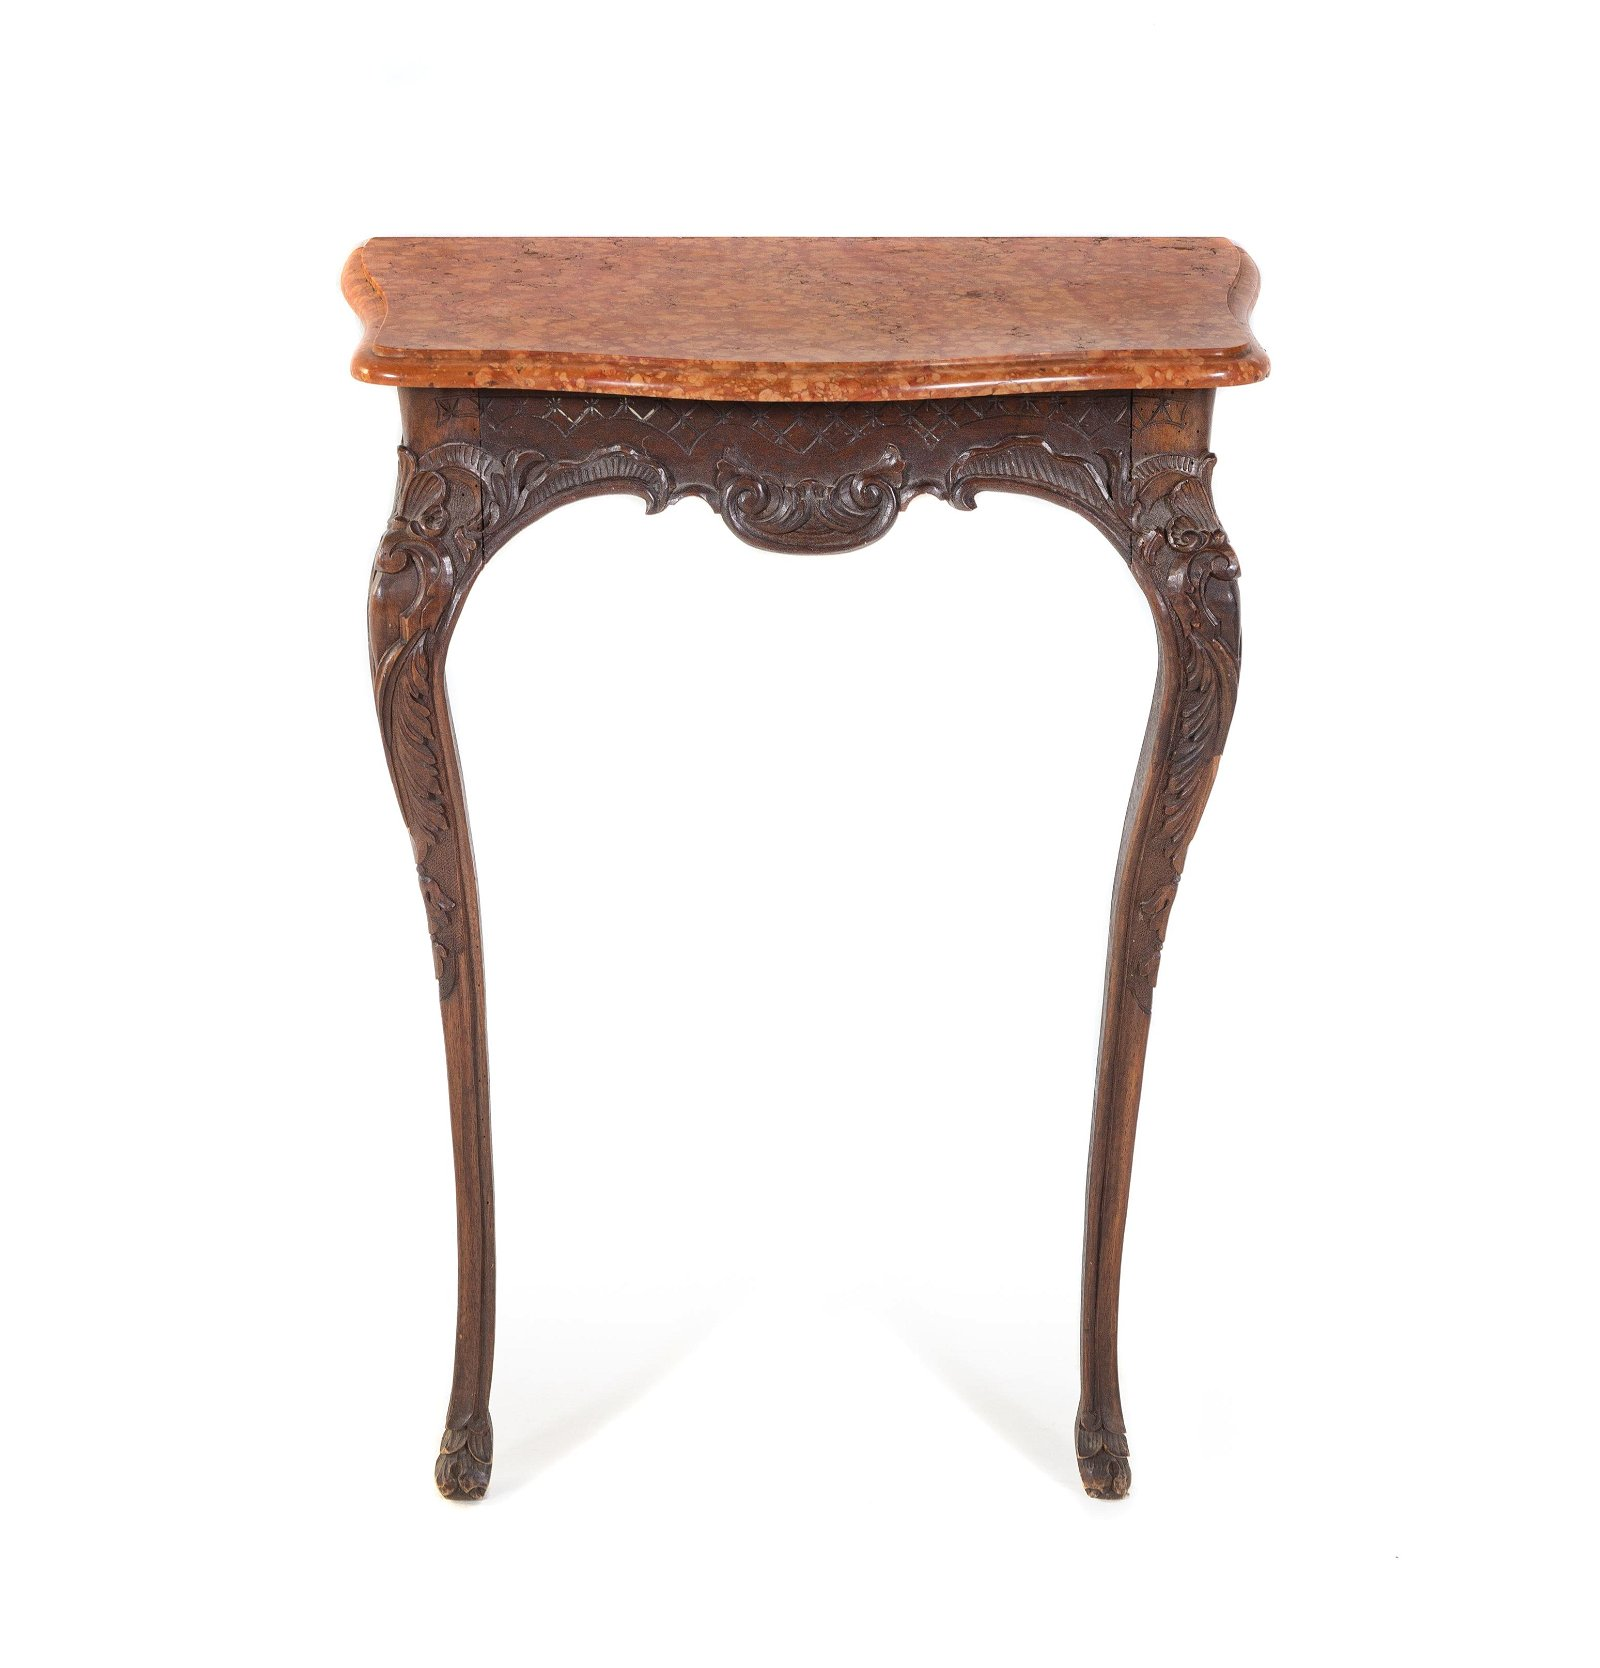 A Louis XV Style Carved Walnut Marble-Top Console Table